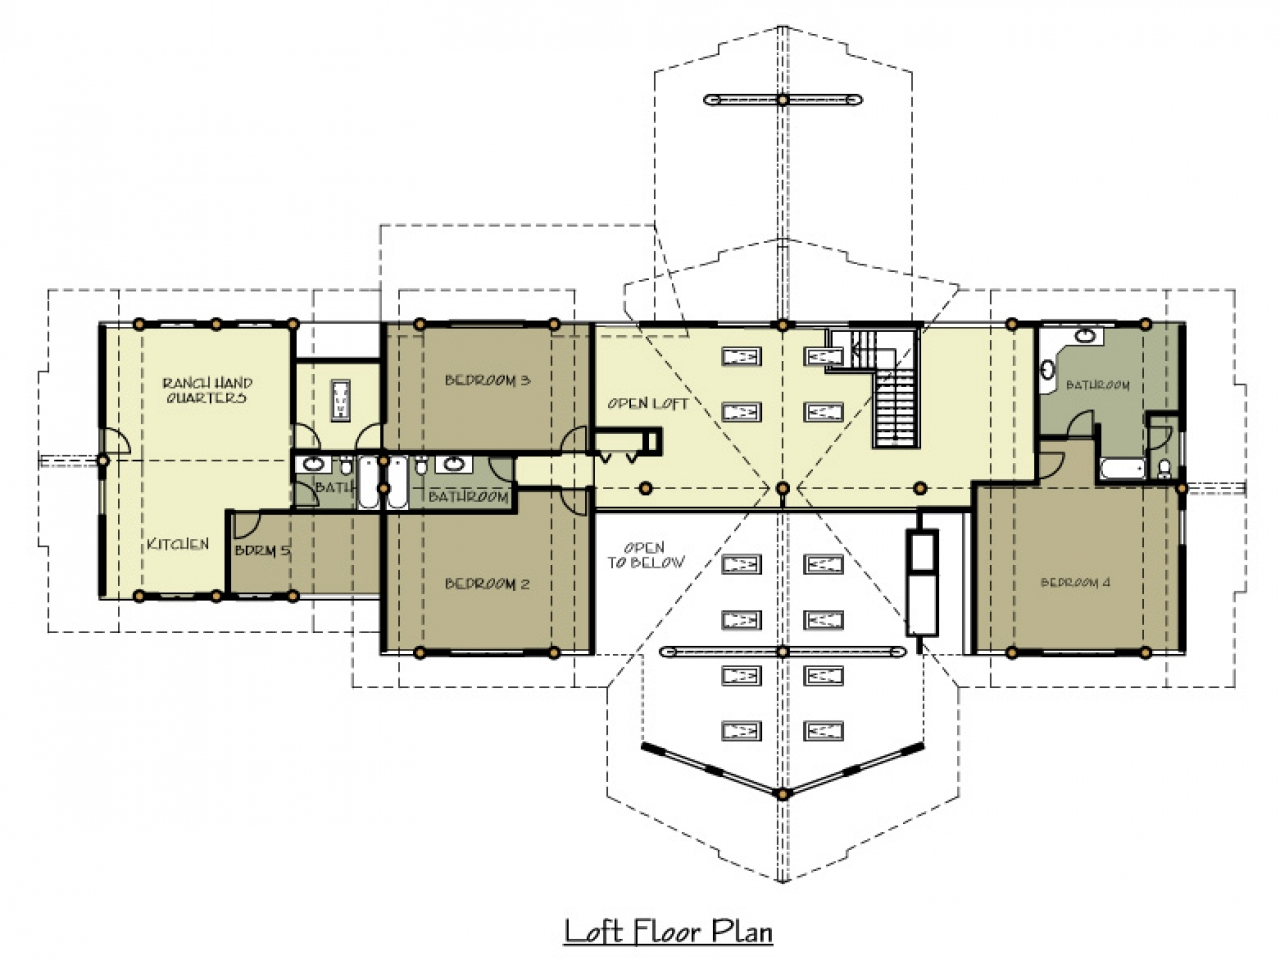 Open Floor Plan Modular Homes With Loft on home designs with lofts, country home plans with lofts, cottage floor plans with lofts, modular homes interiors with lofts,